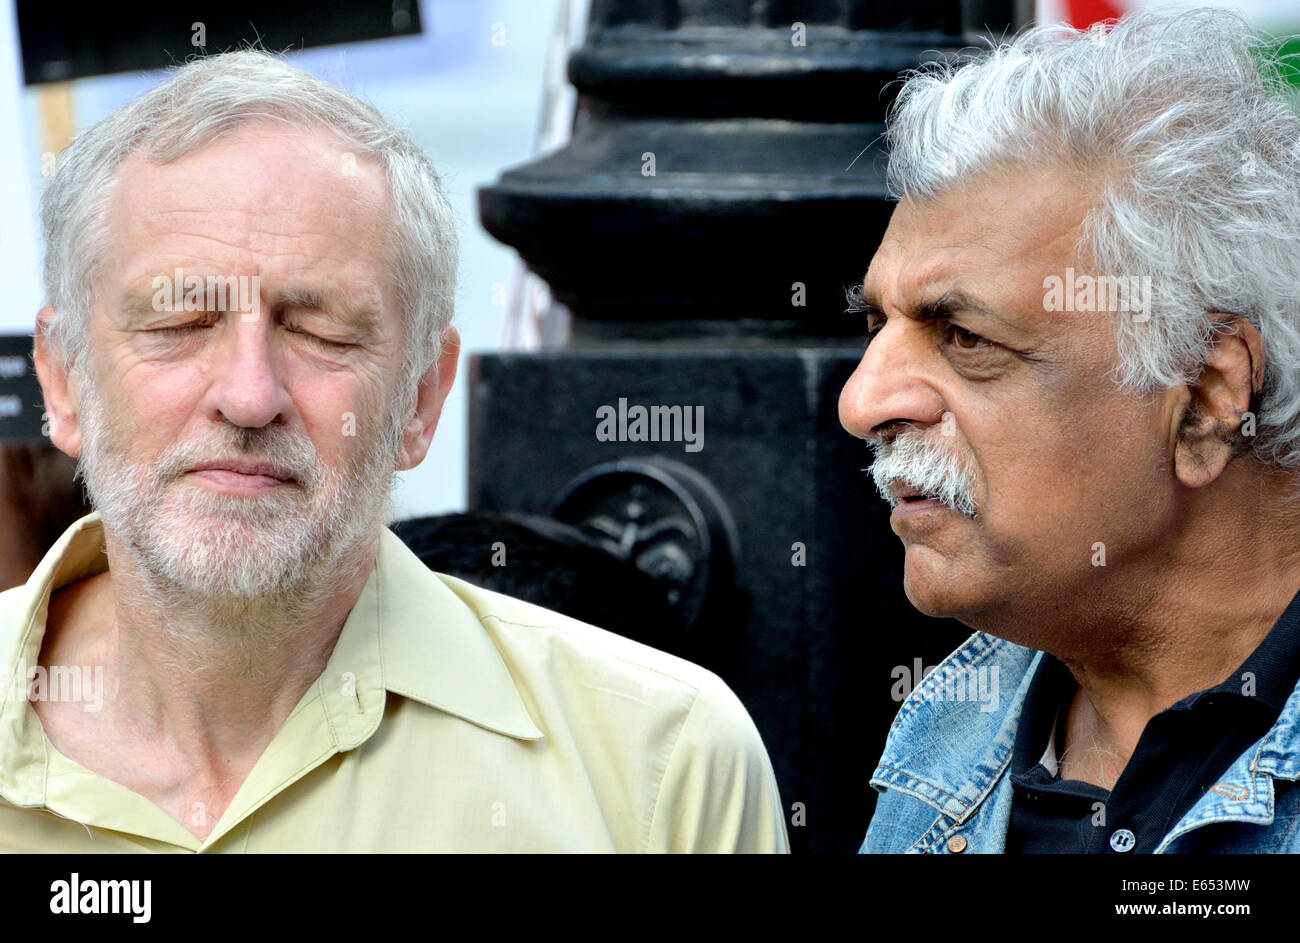 Jeremy Corbyn MP and Tariq Ali (writer and broadcaster)outside BBC Broadcasting House at the National Demonstration - Stock Image